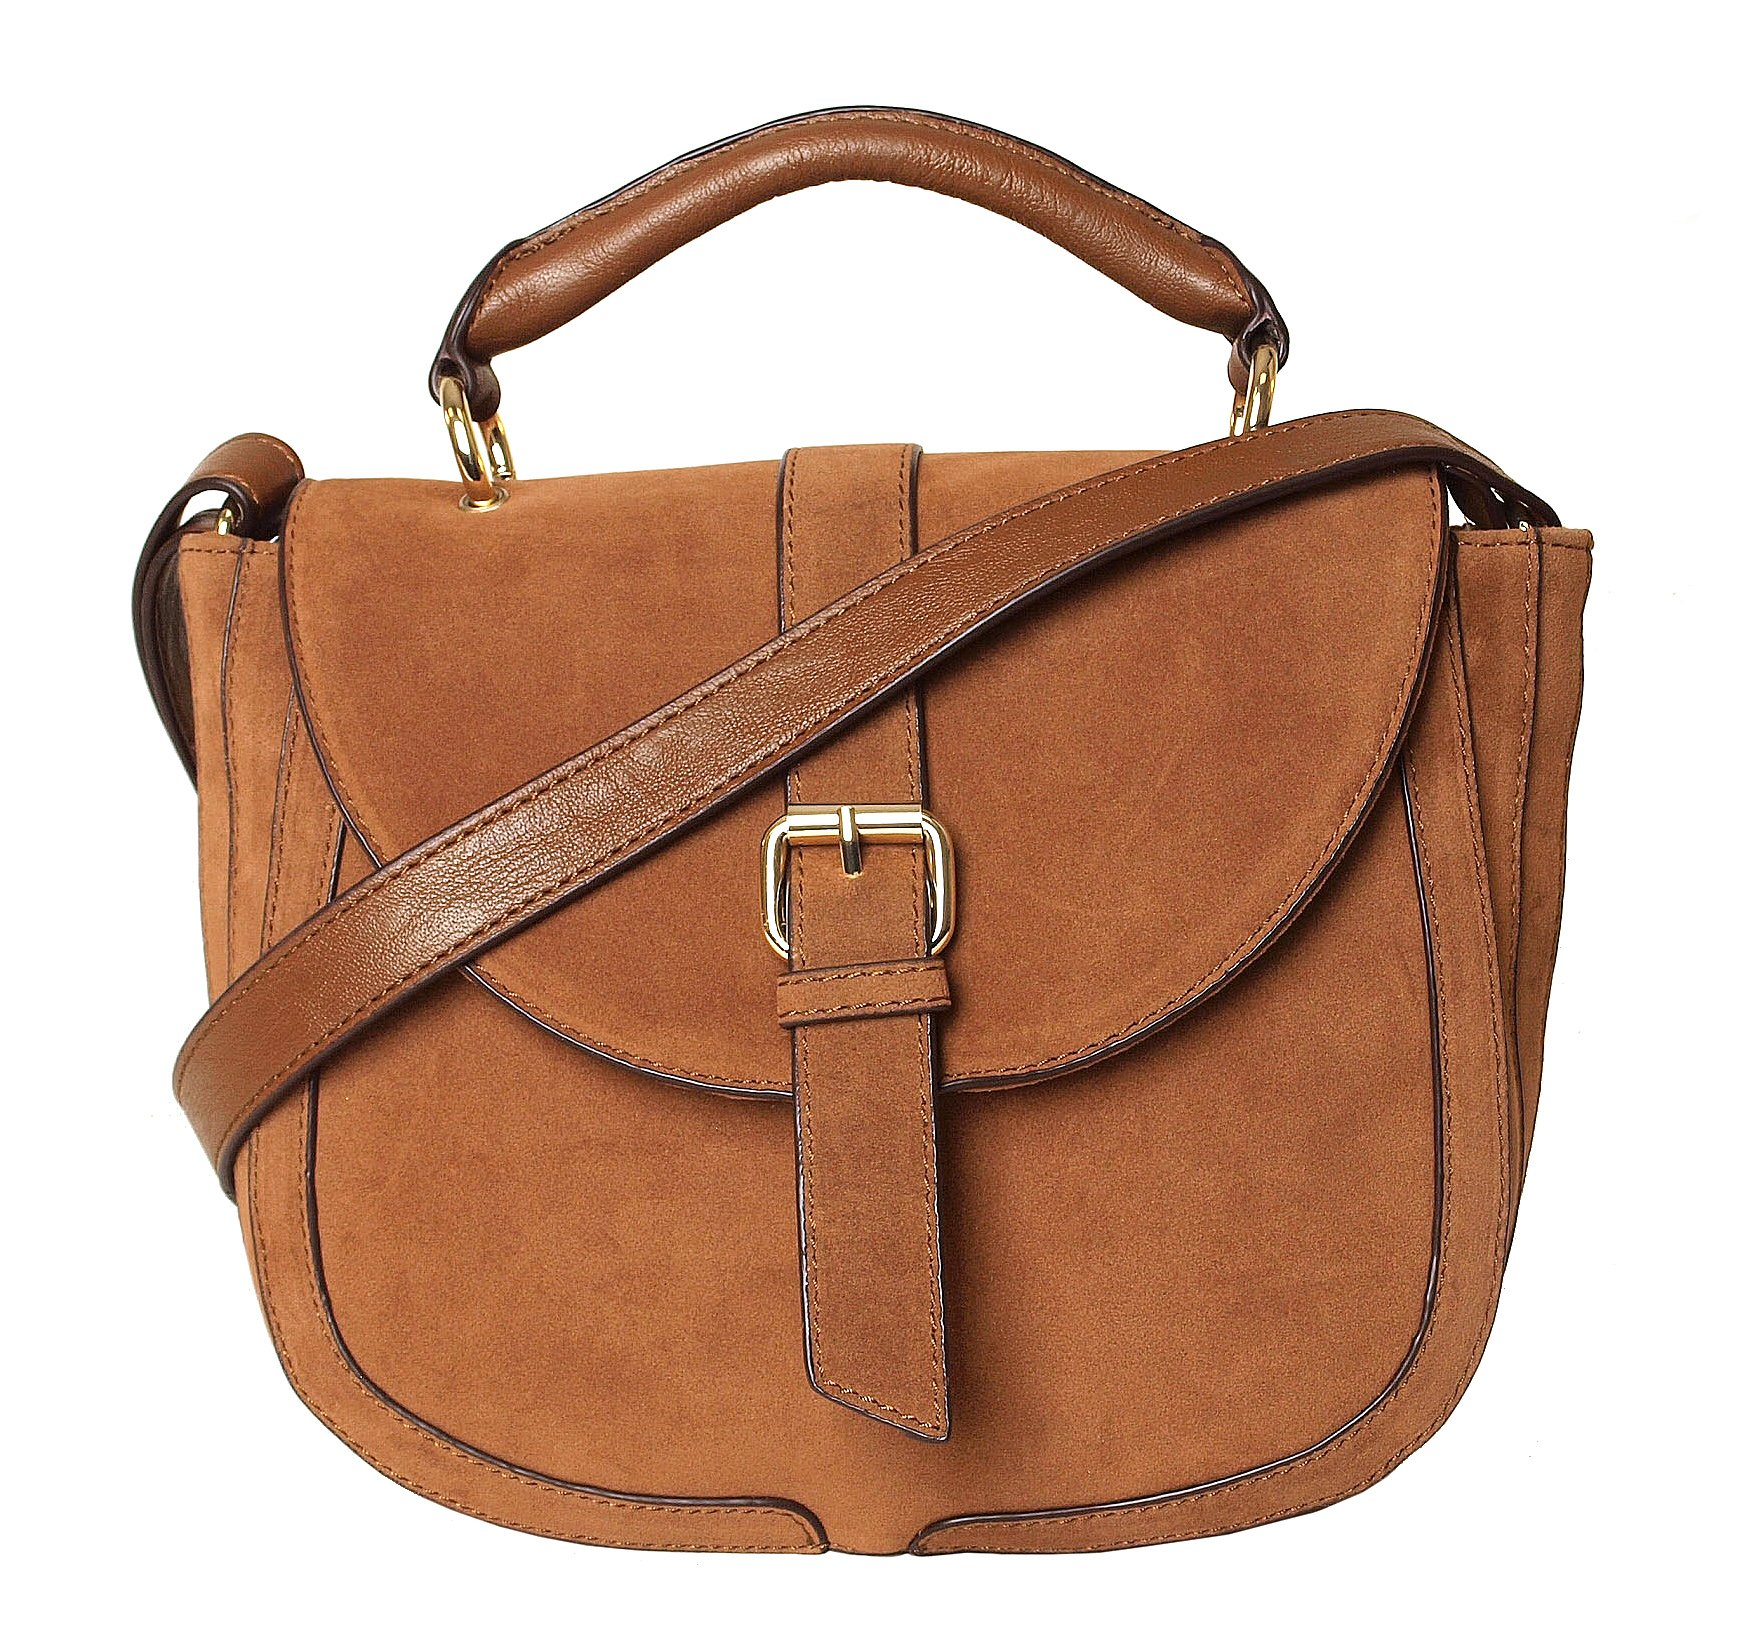 Imoshion Women's Genuine Tan Faux Suede Saddle Satchel Crossbody Bag With Short Handle And Wide Adjustable Shoulder Strap With Flap Magnetic Closure